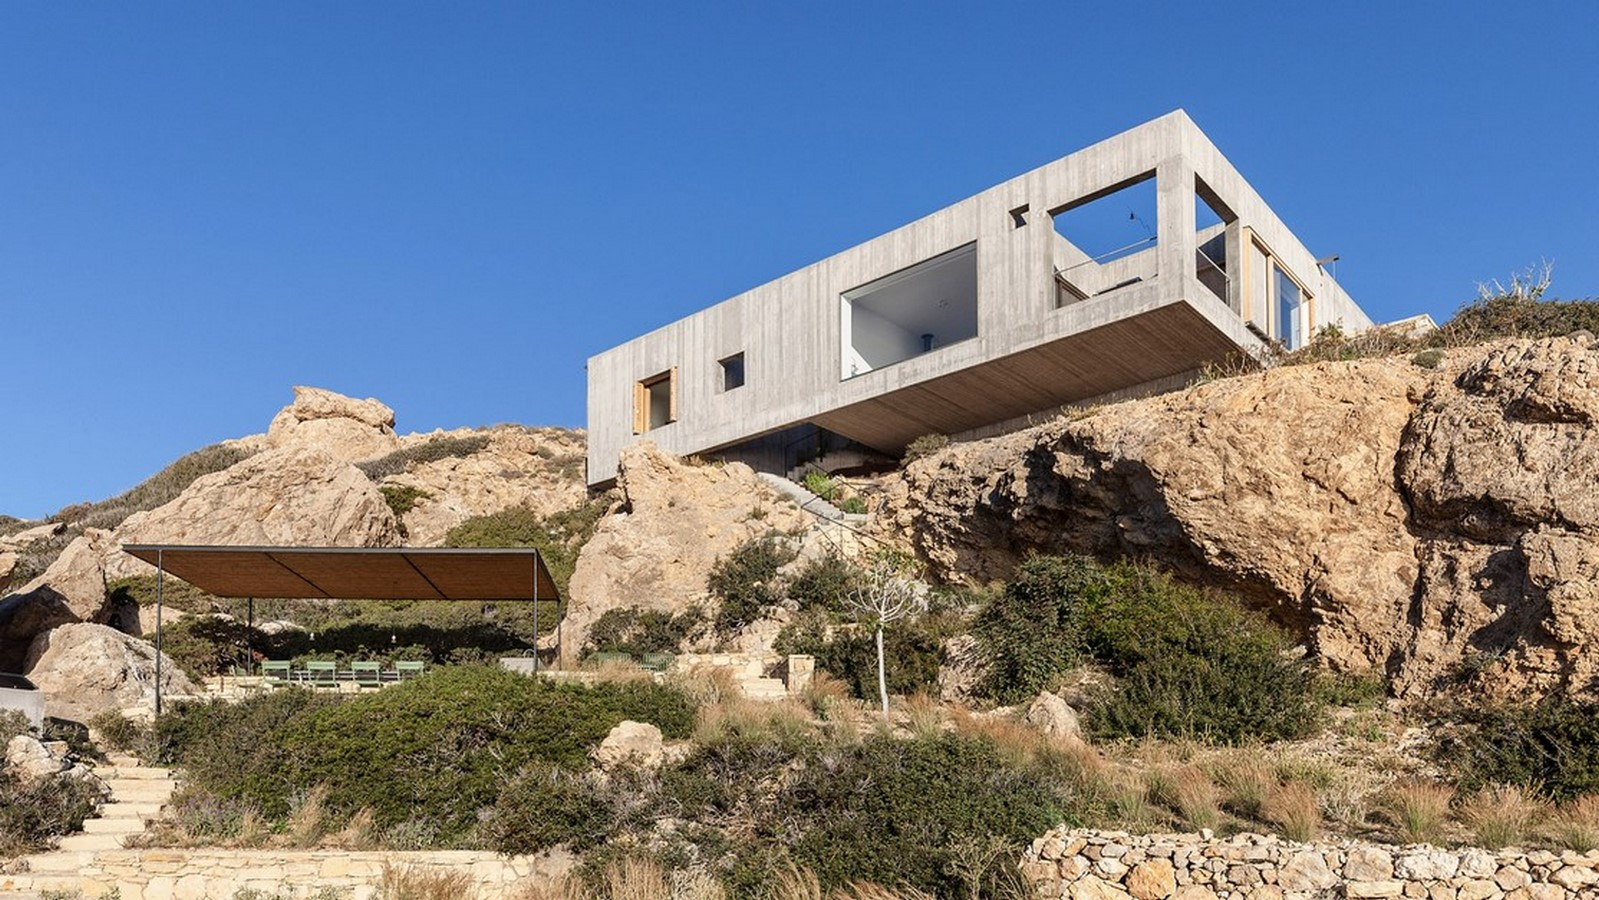 50 Examples of Modern concrete homes - Sheet20